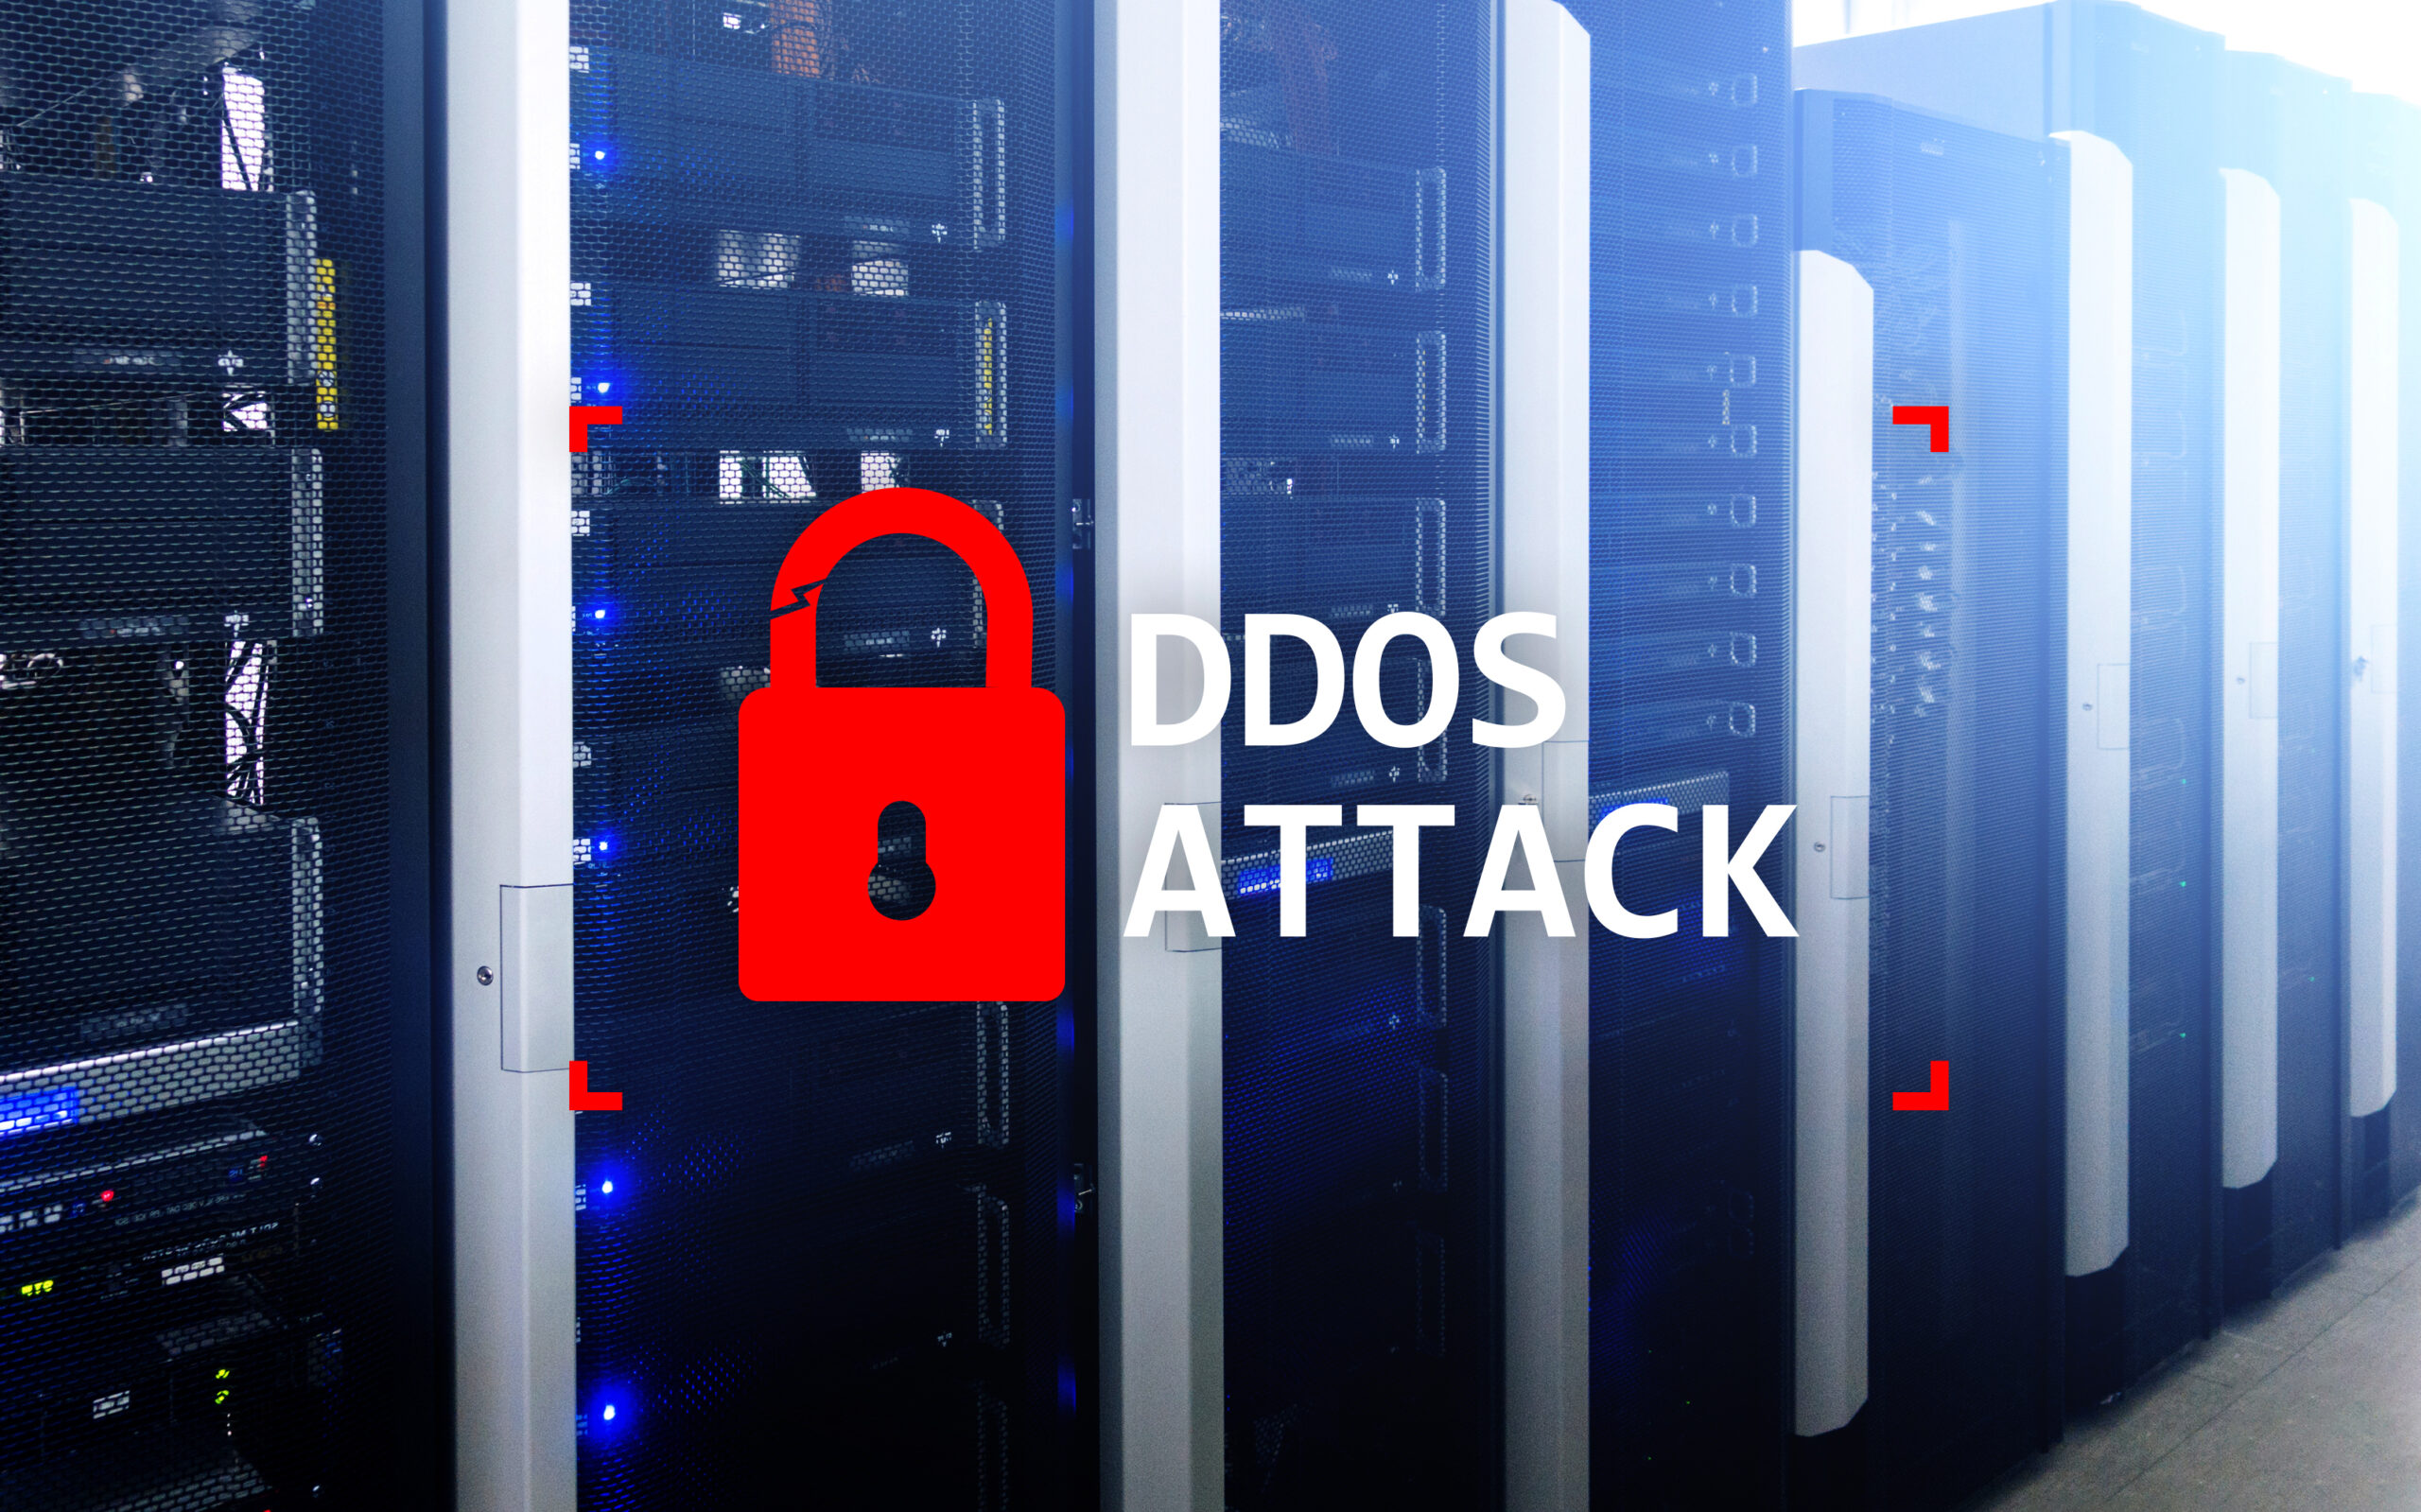 DDOS Attacks Causing Telephone Outages